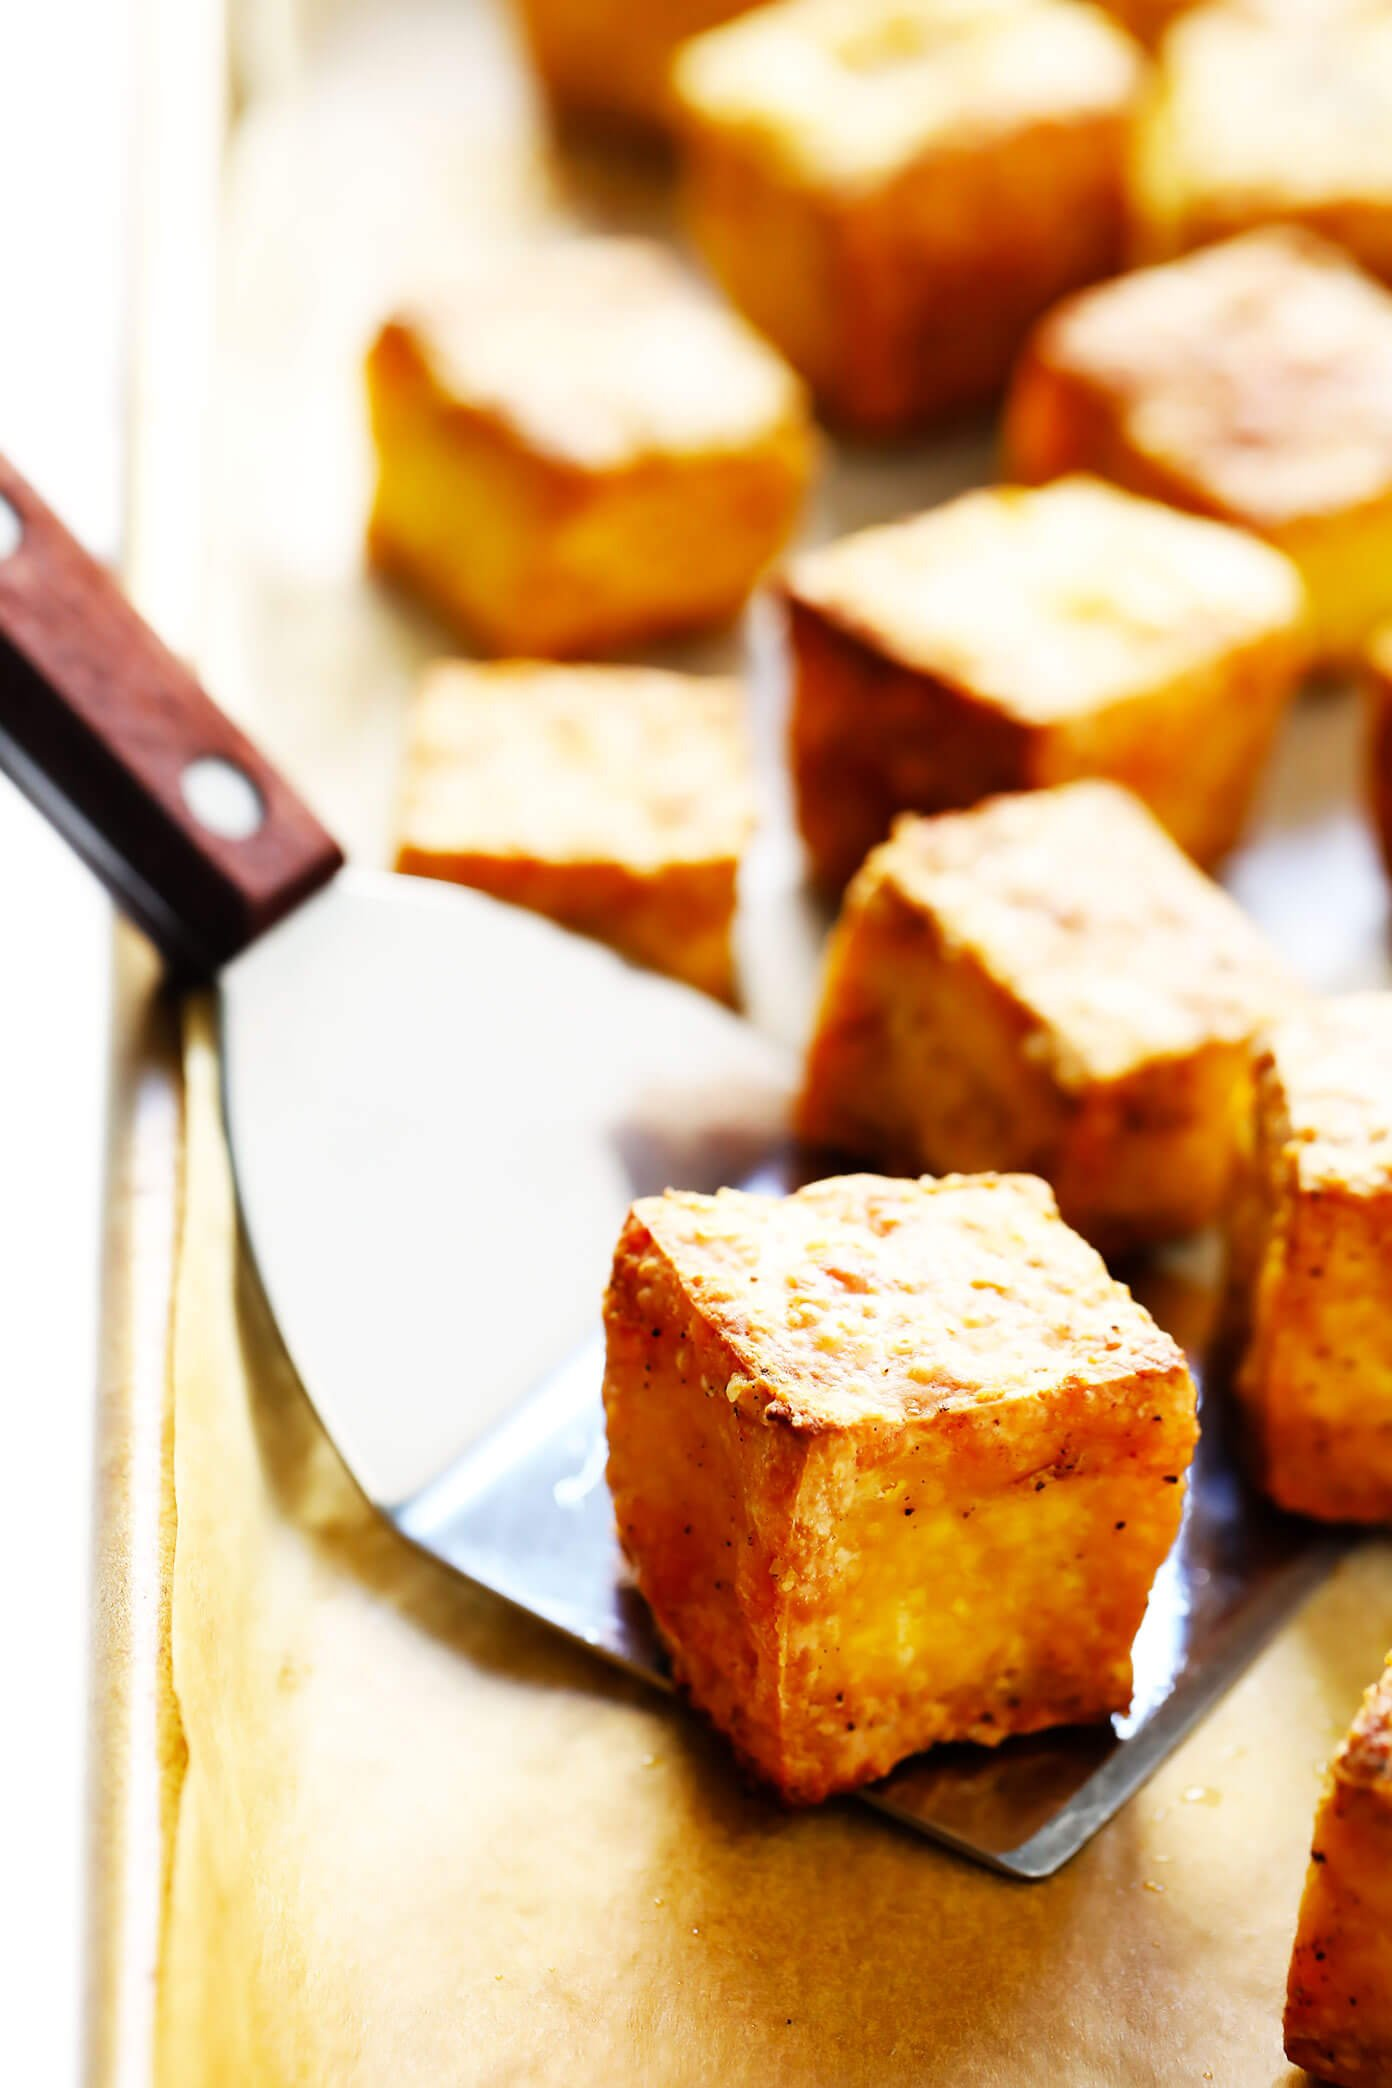 How To Make Perfectly Baked Tofu